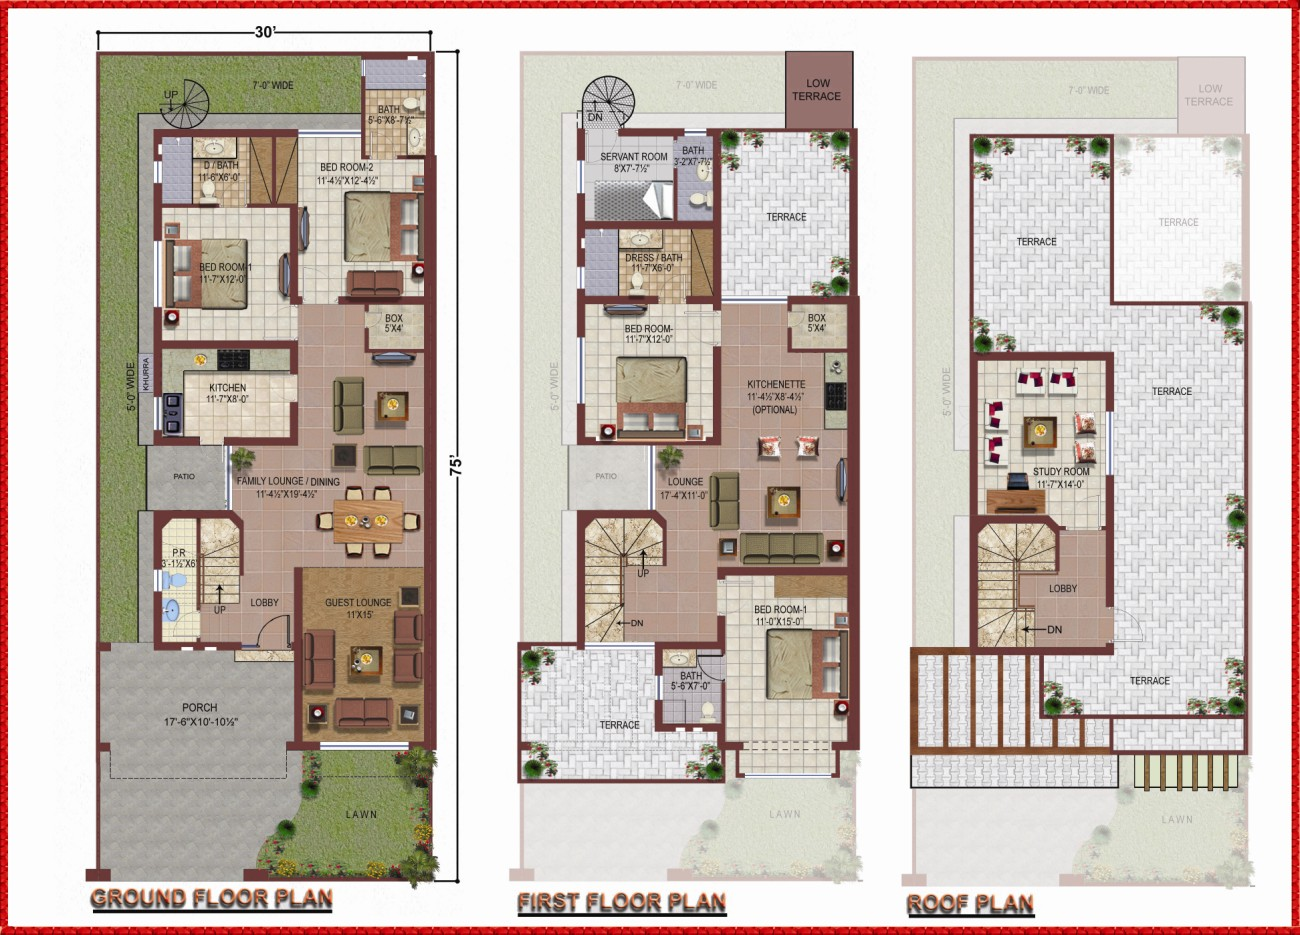 10 marla house plan civil engineers pk Construction cost of 5 marla house